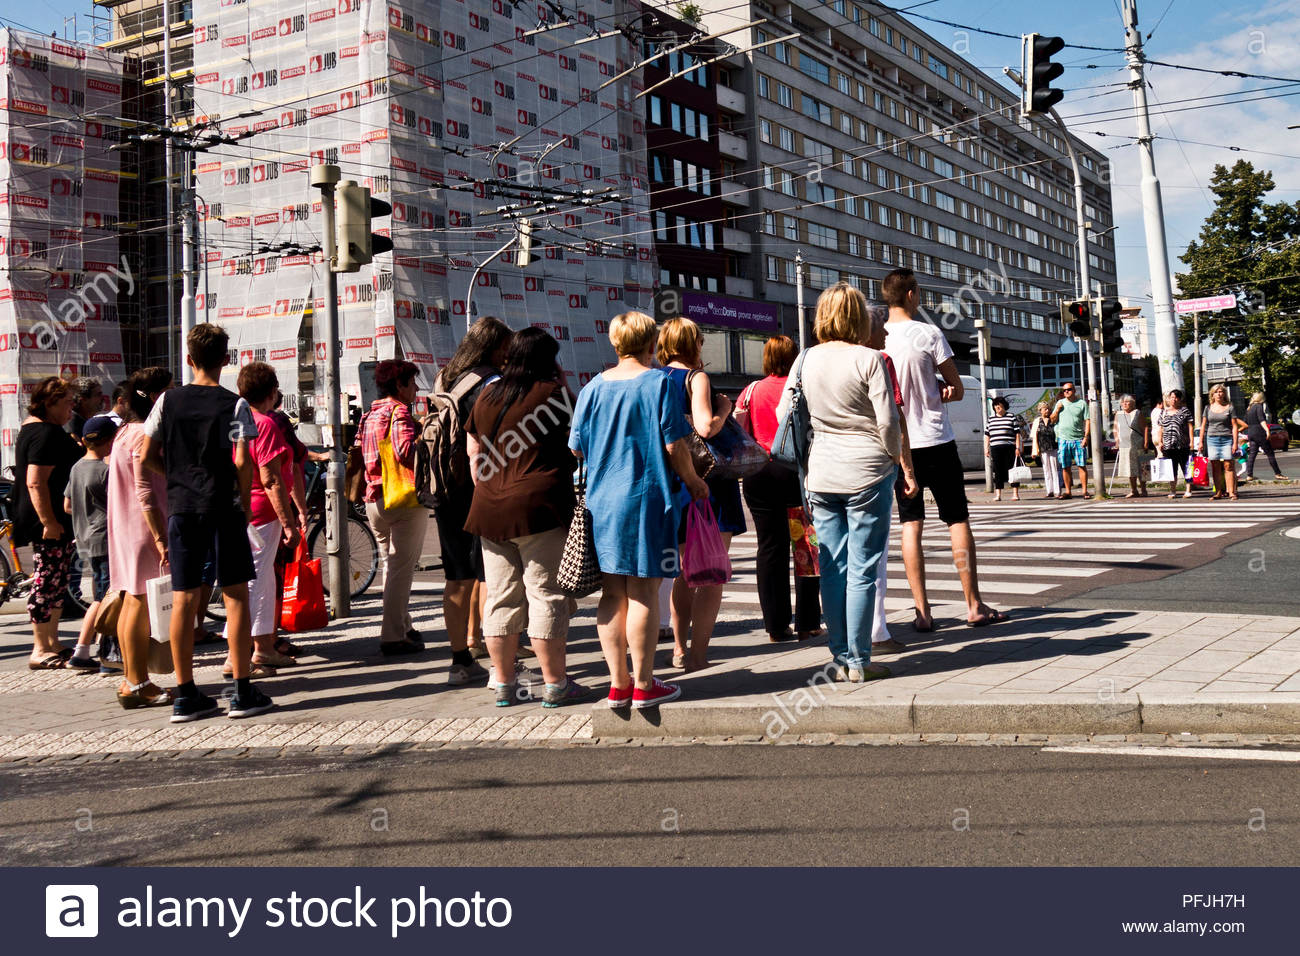 group of people standing at a crosswalk waiting for street light to became green and cross the street - Stock Image